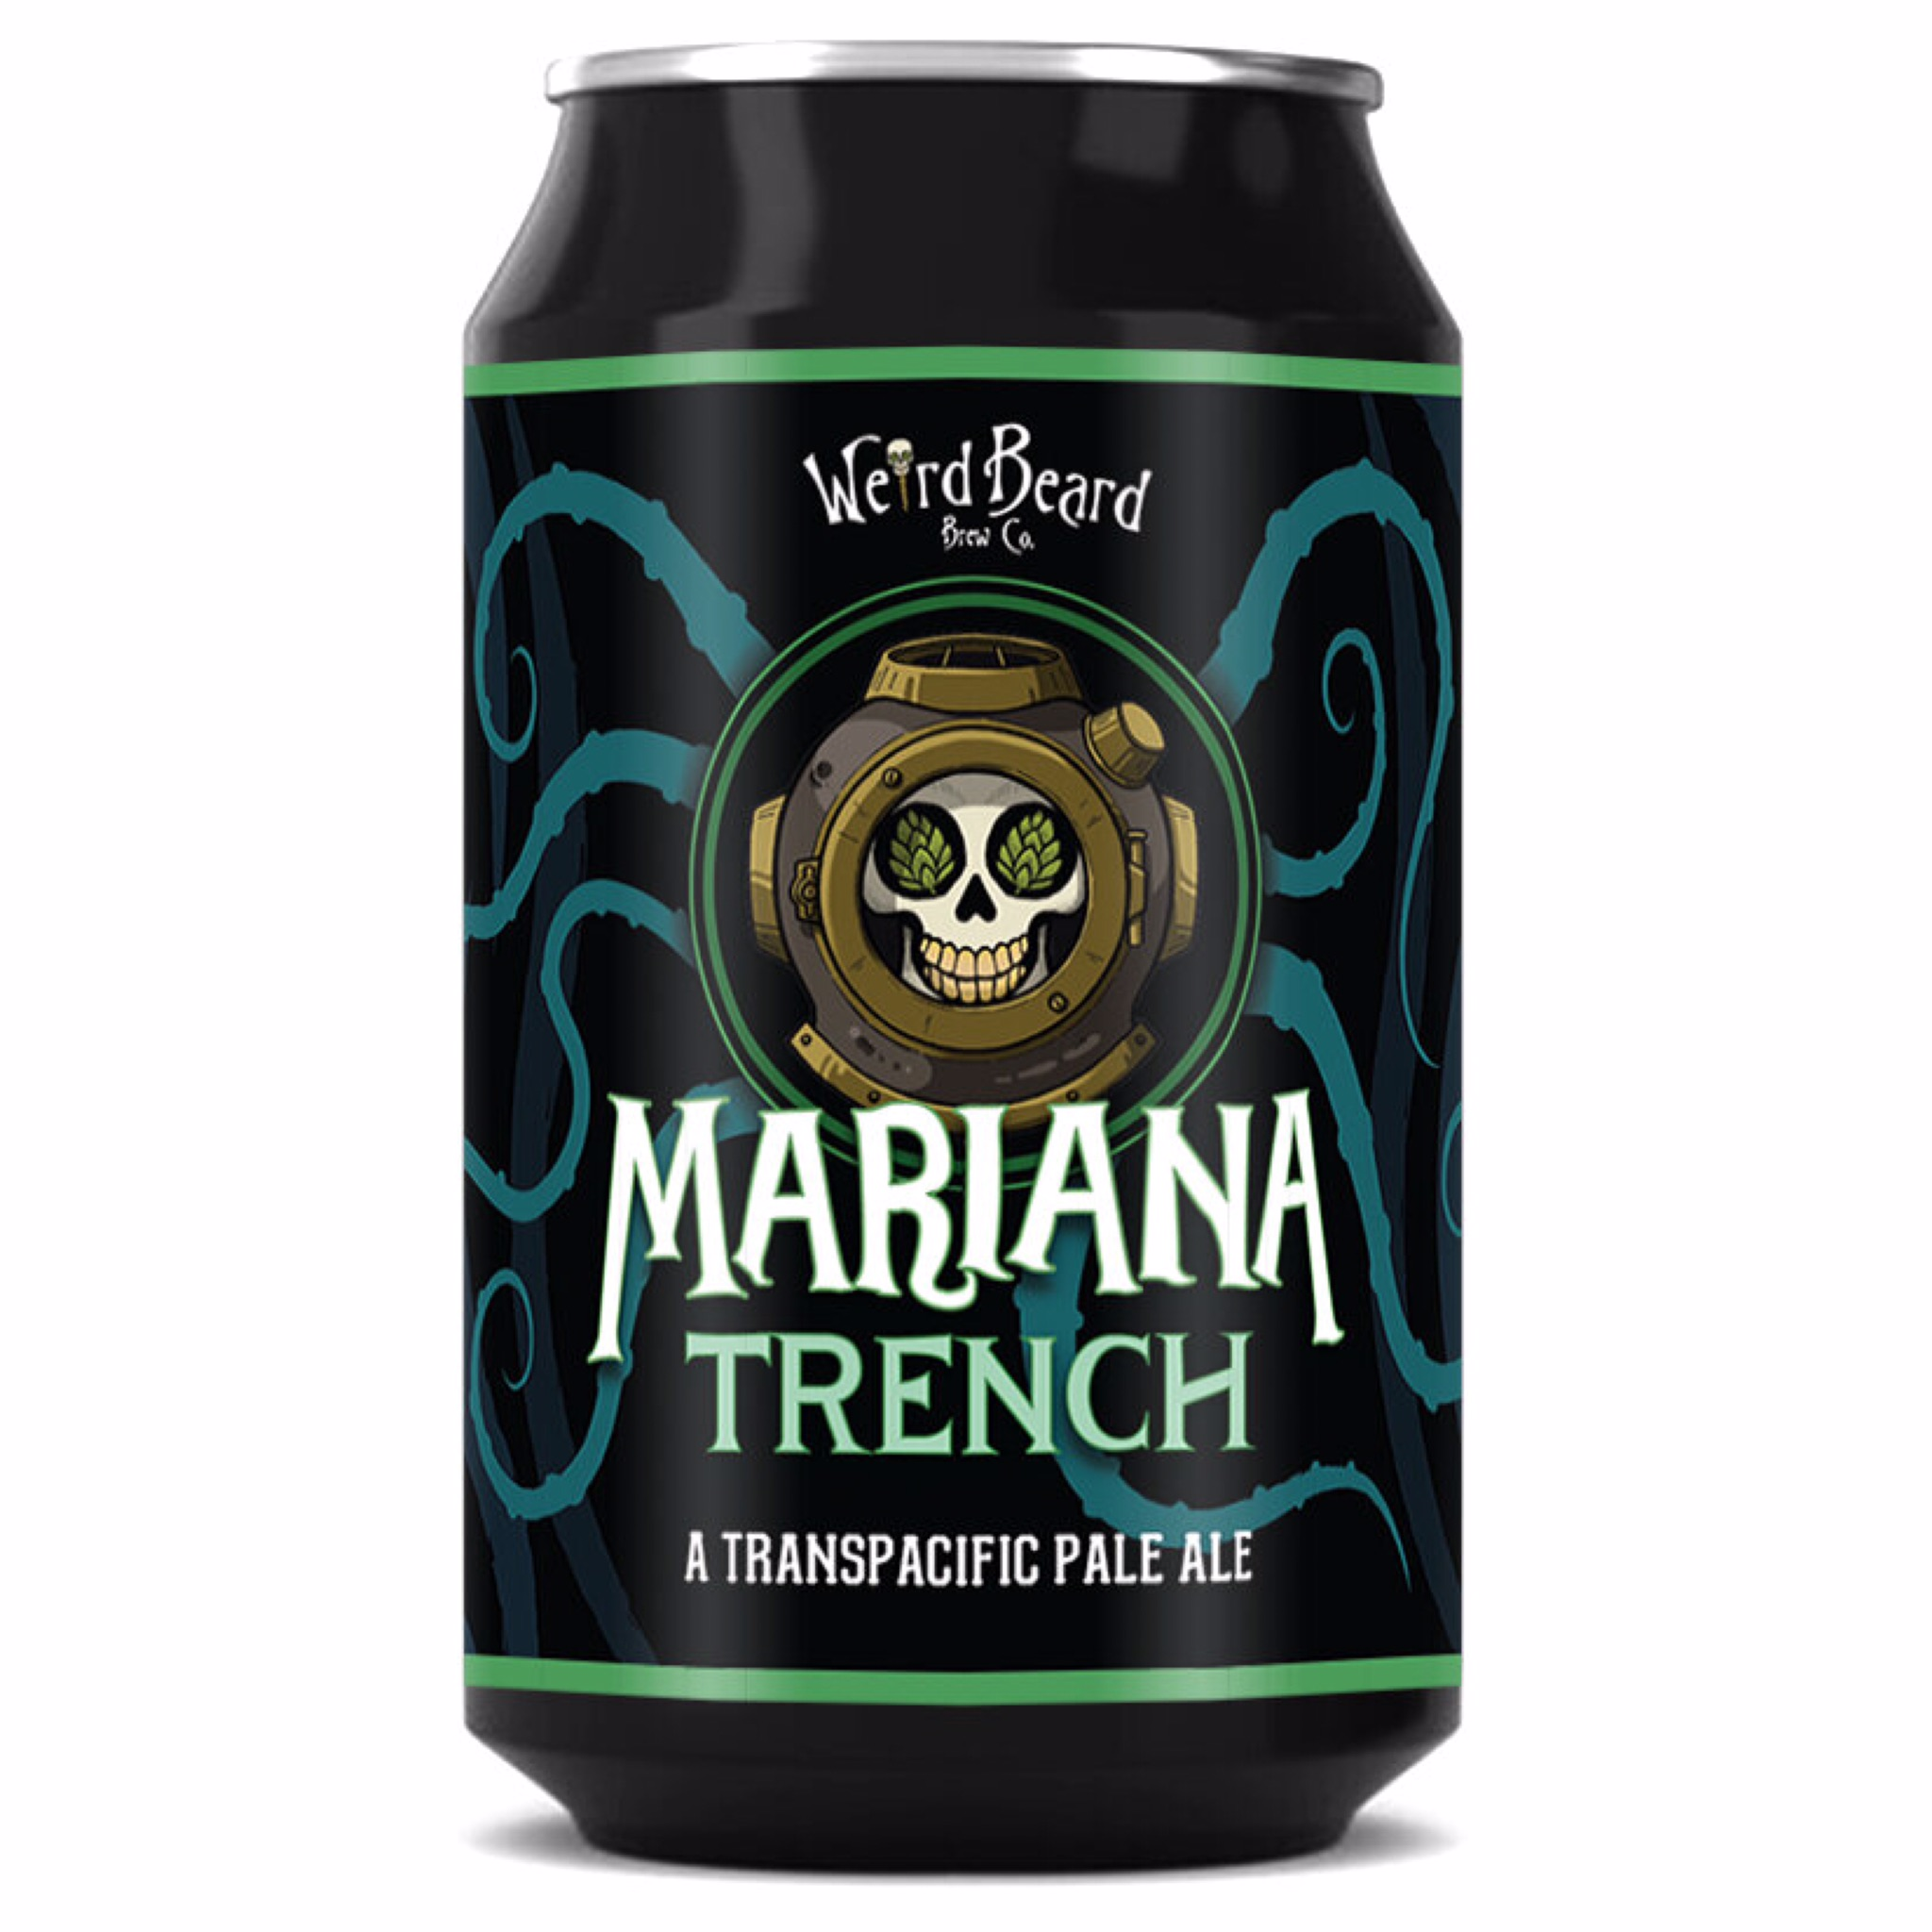 Mariana Trench Transpacific Pale Ale 5.3% 330ml Weird Beard Brew Co